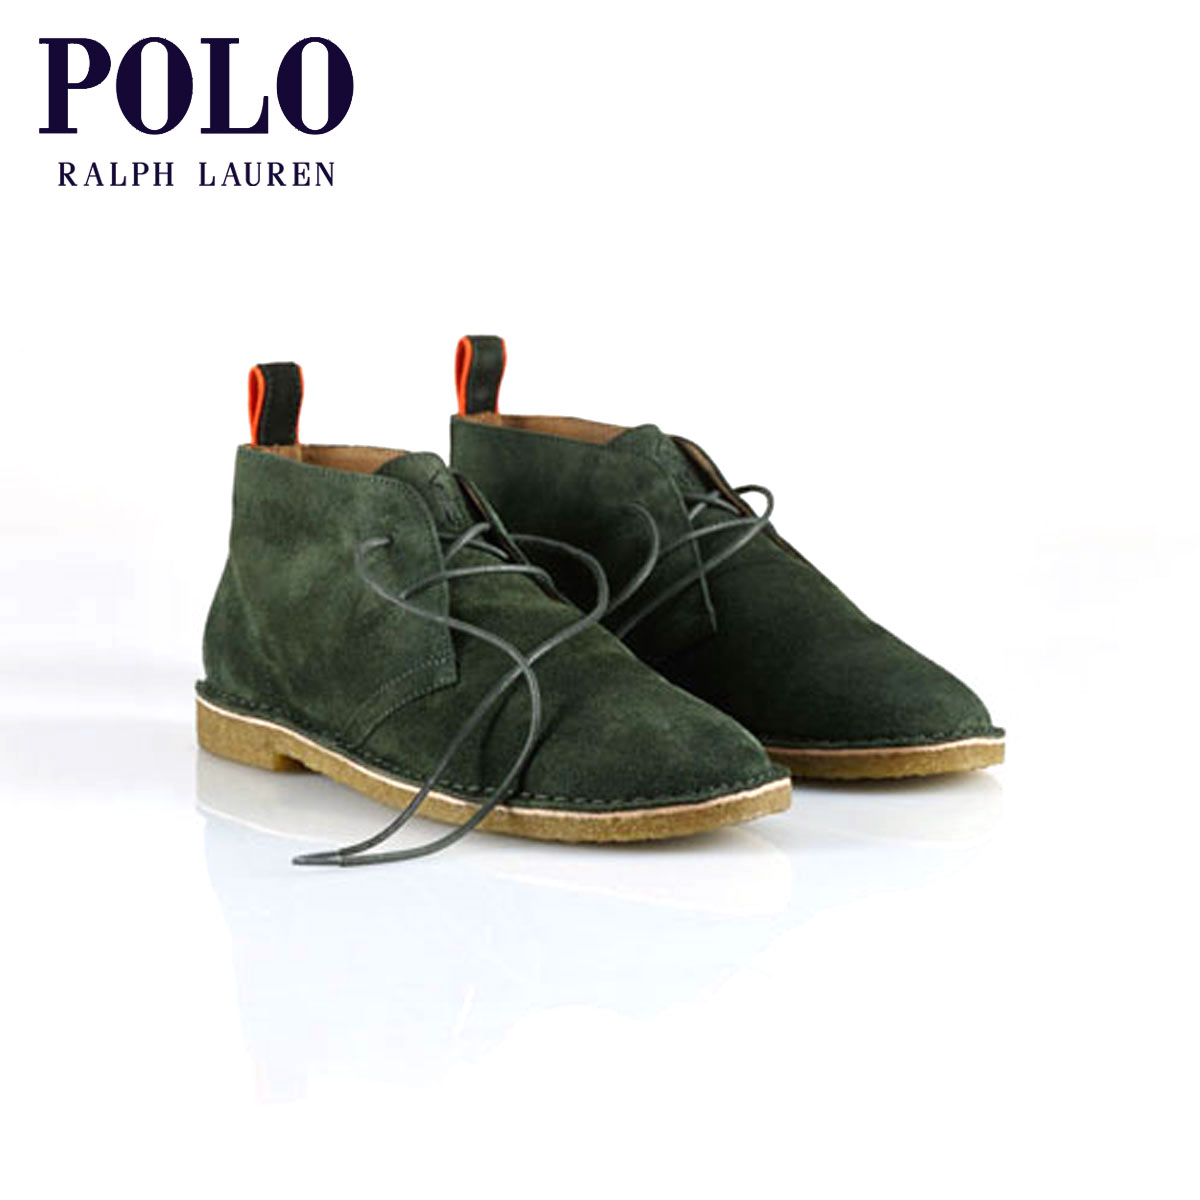 look good shoes sale incredible prices fresh styles Polo Ralph Lauren POLO RALPH LAUREN regular article men shoes Casterton  Suede Chukka Boot D20S